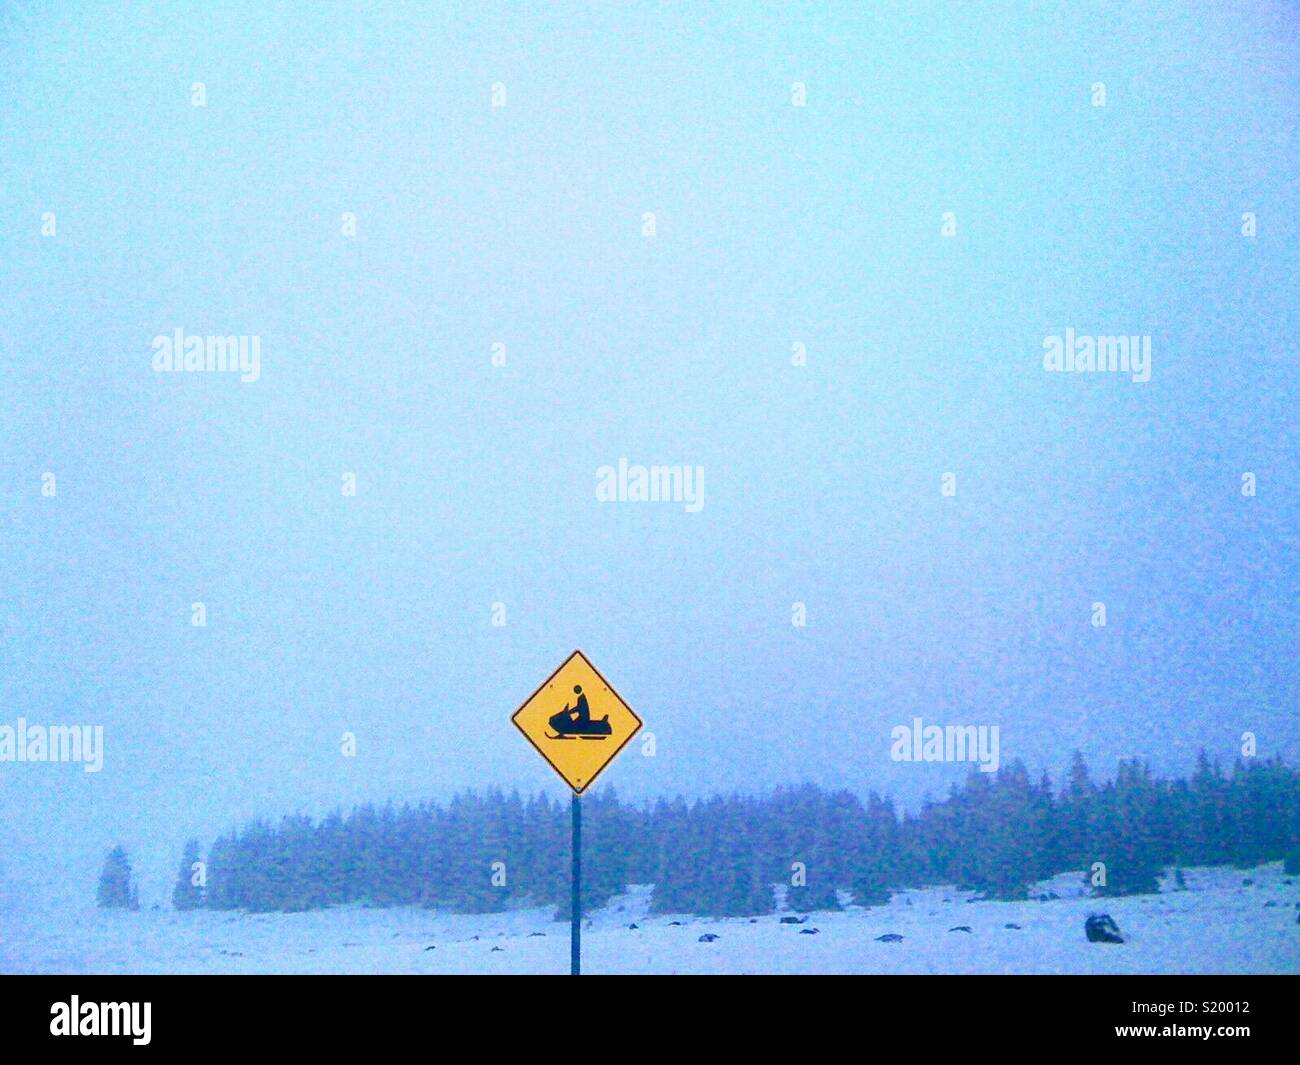 Snowmobile crossing sign. - Stock Image